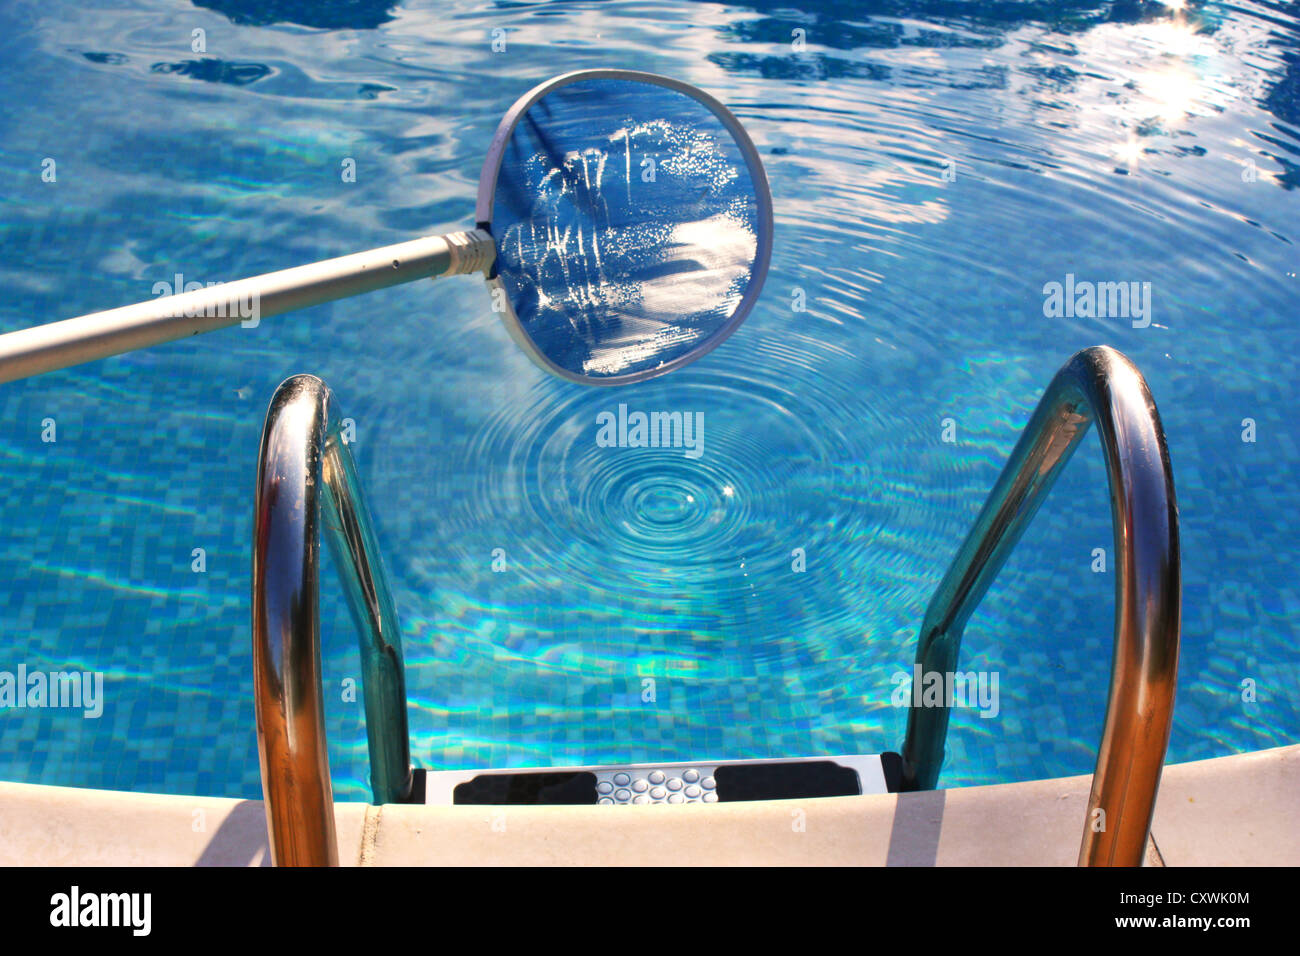 Cleaning net in swimming pool Stock Photo